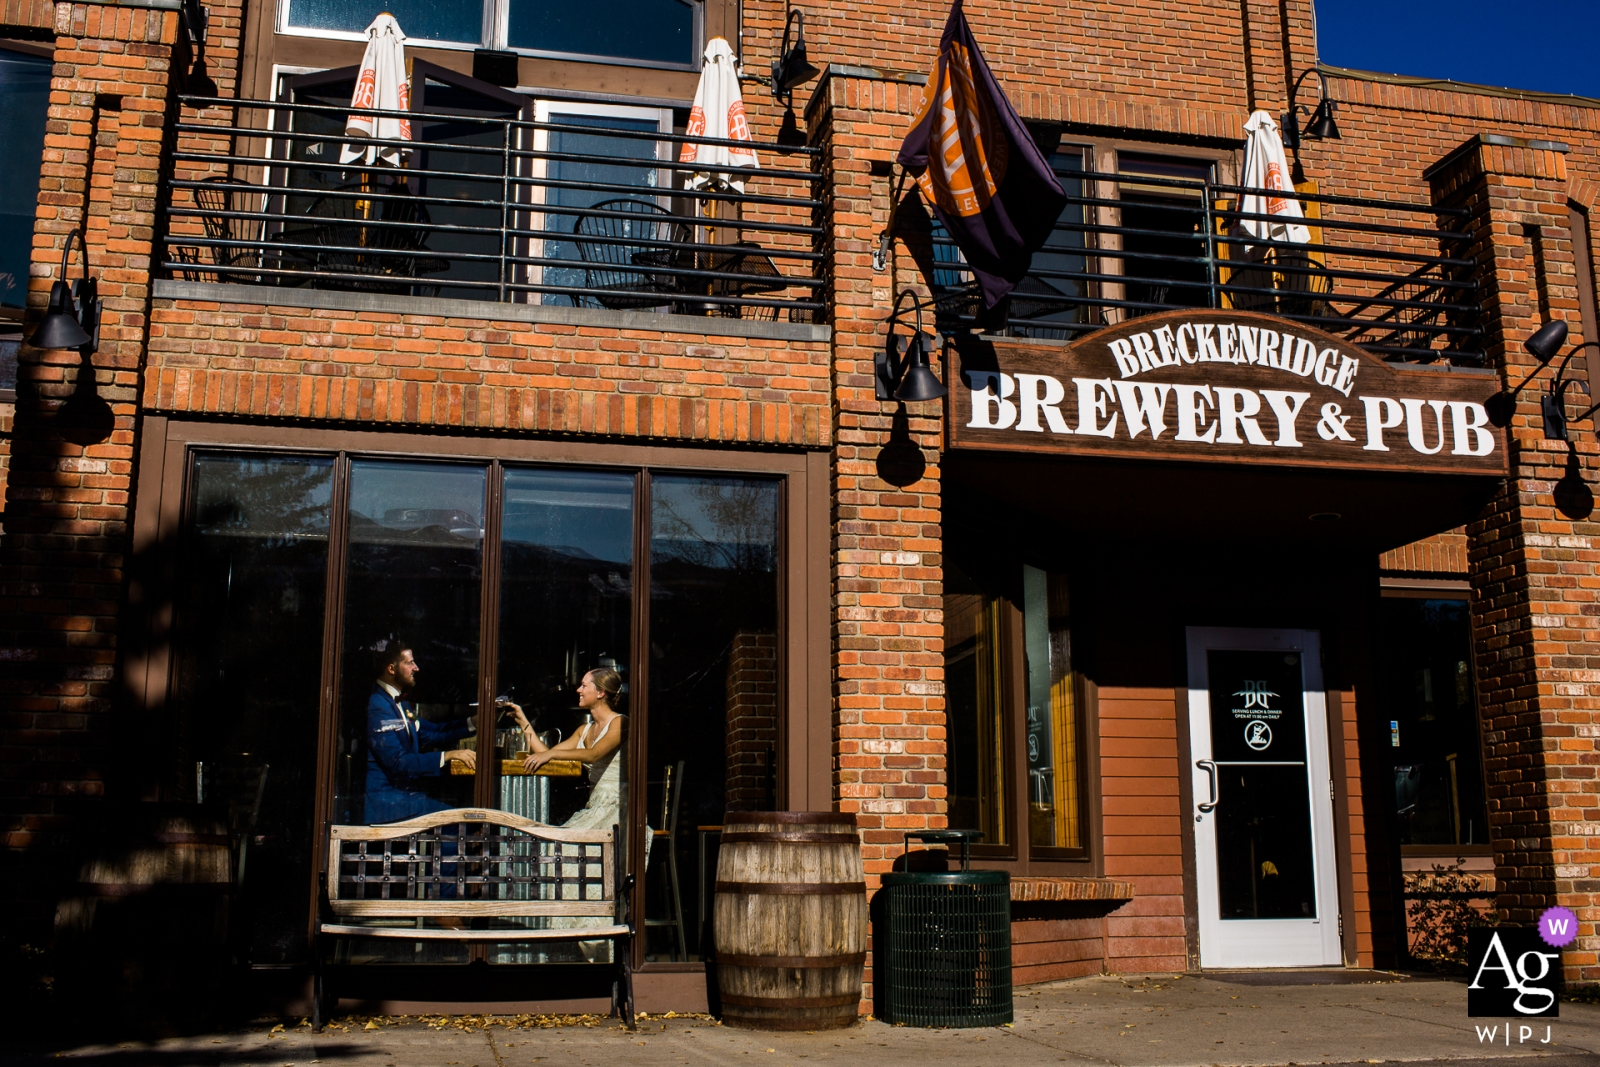 Colorado Brewery Couple enjoying happy hour together at brewery on wedding day